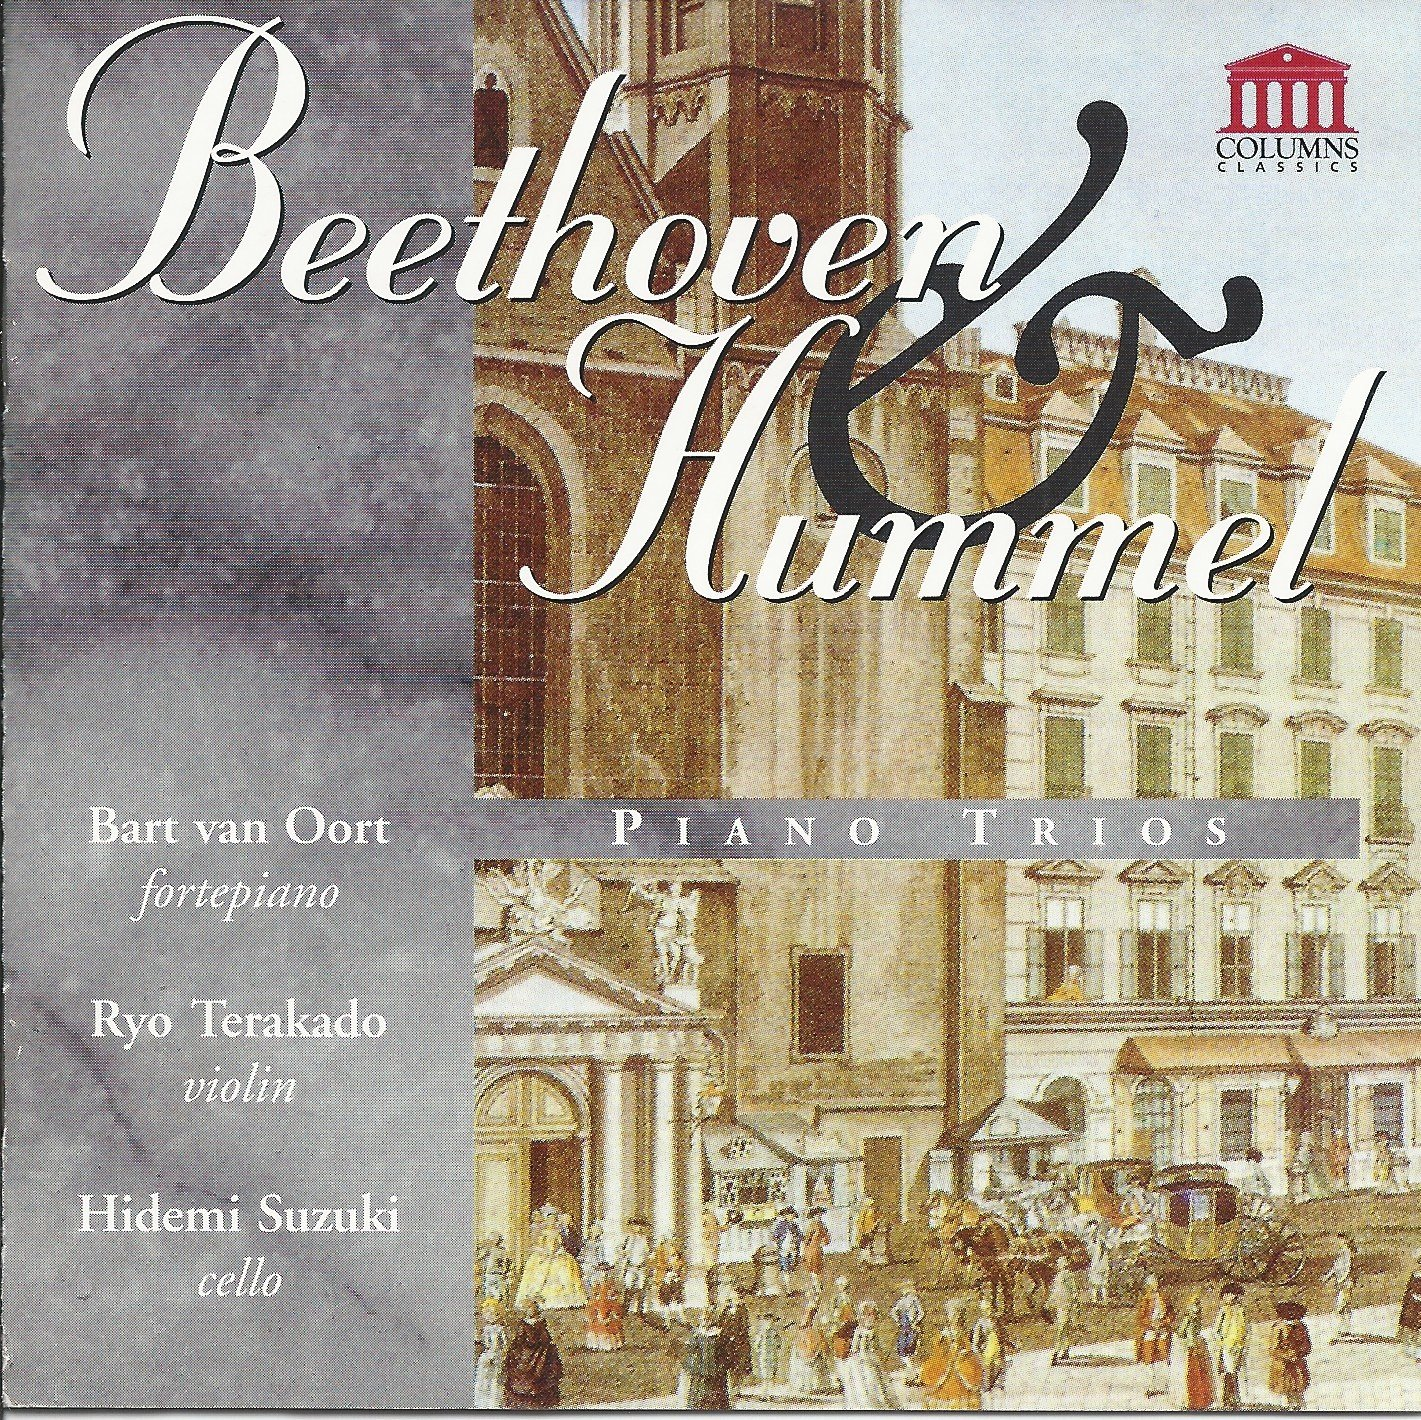 Piano Trios by Beethoven and Hummel